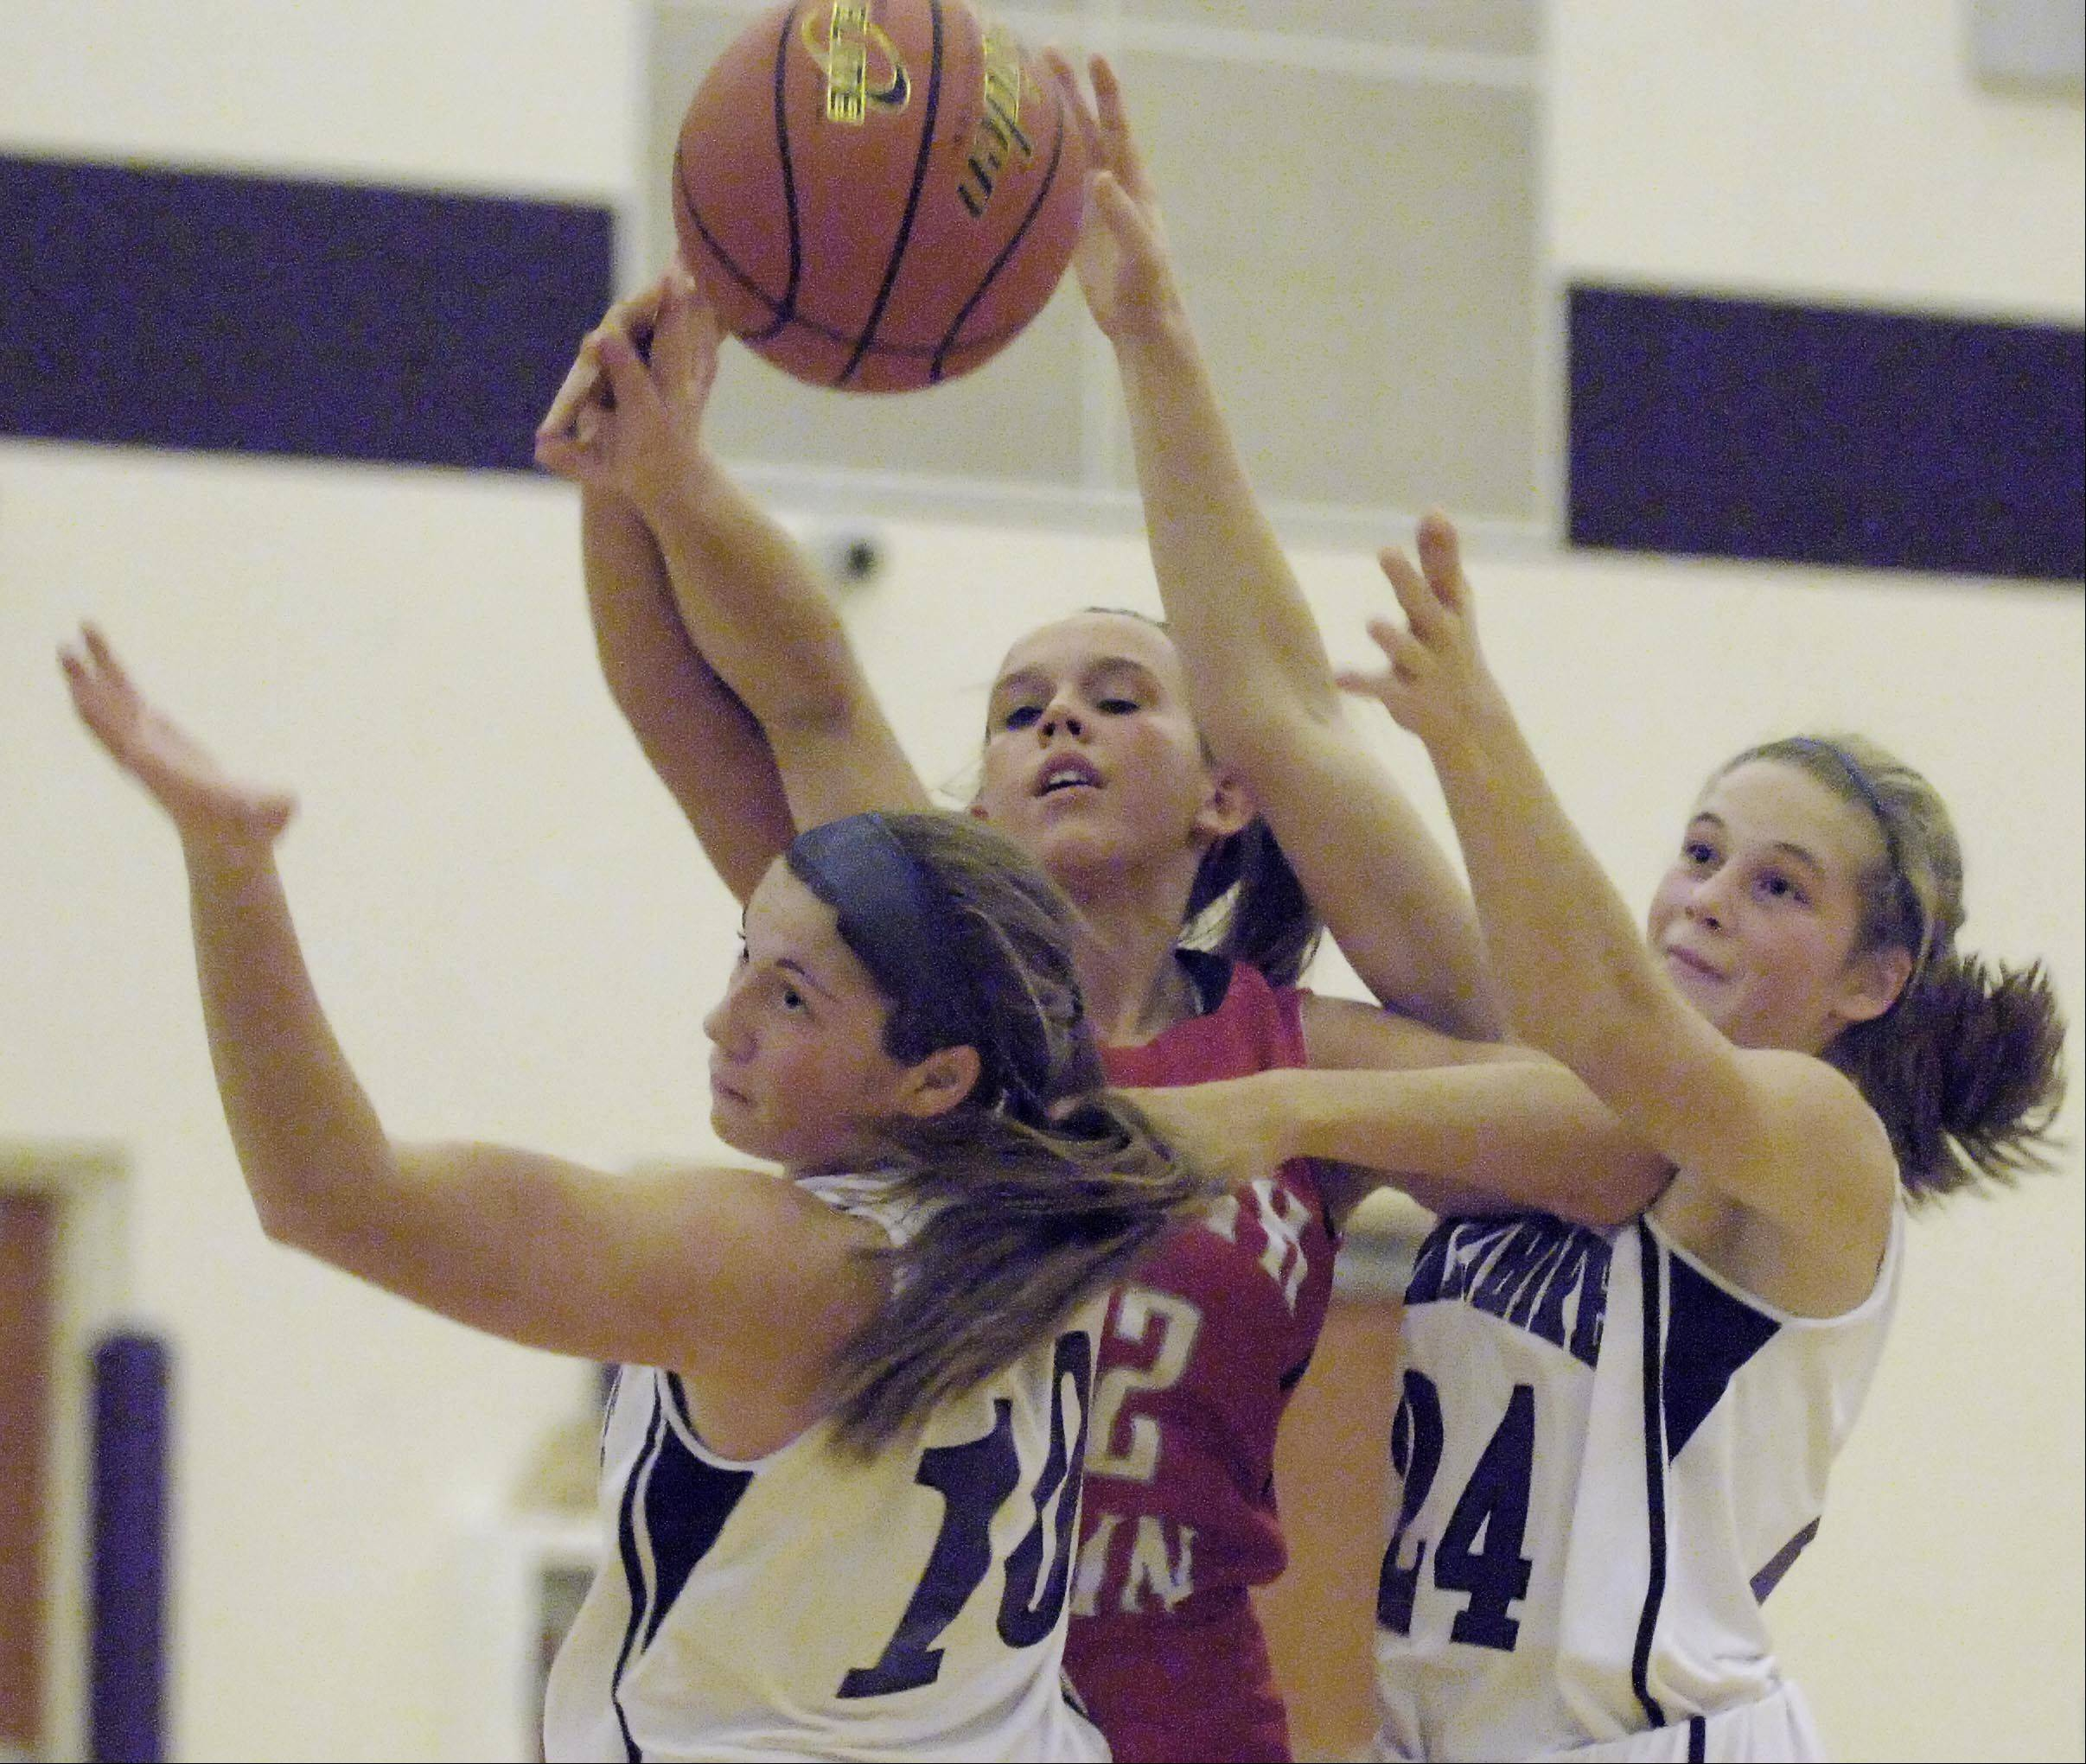 South Elgin's Laura McIntosh loses control of the ball under the defense of Hampshire's Jen Dumoulin and Nikki Dumoulin, right, late in the game Wednesday in Hampshire.